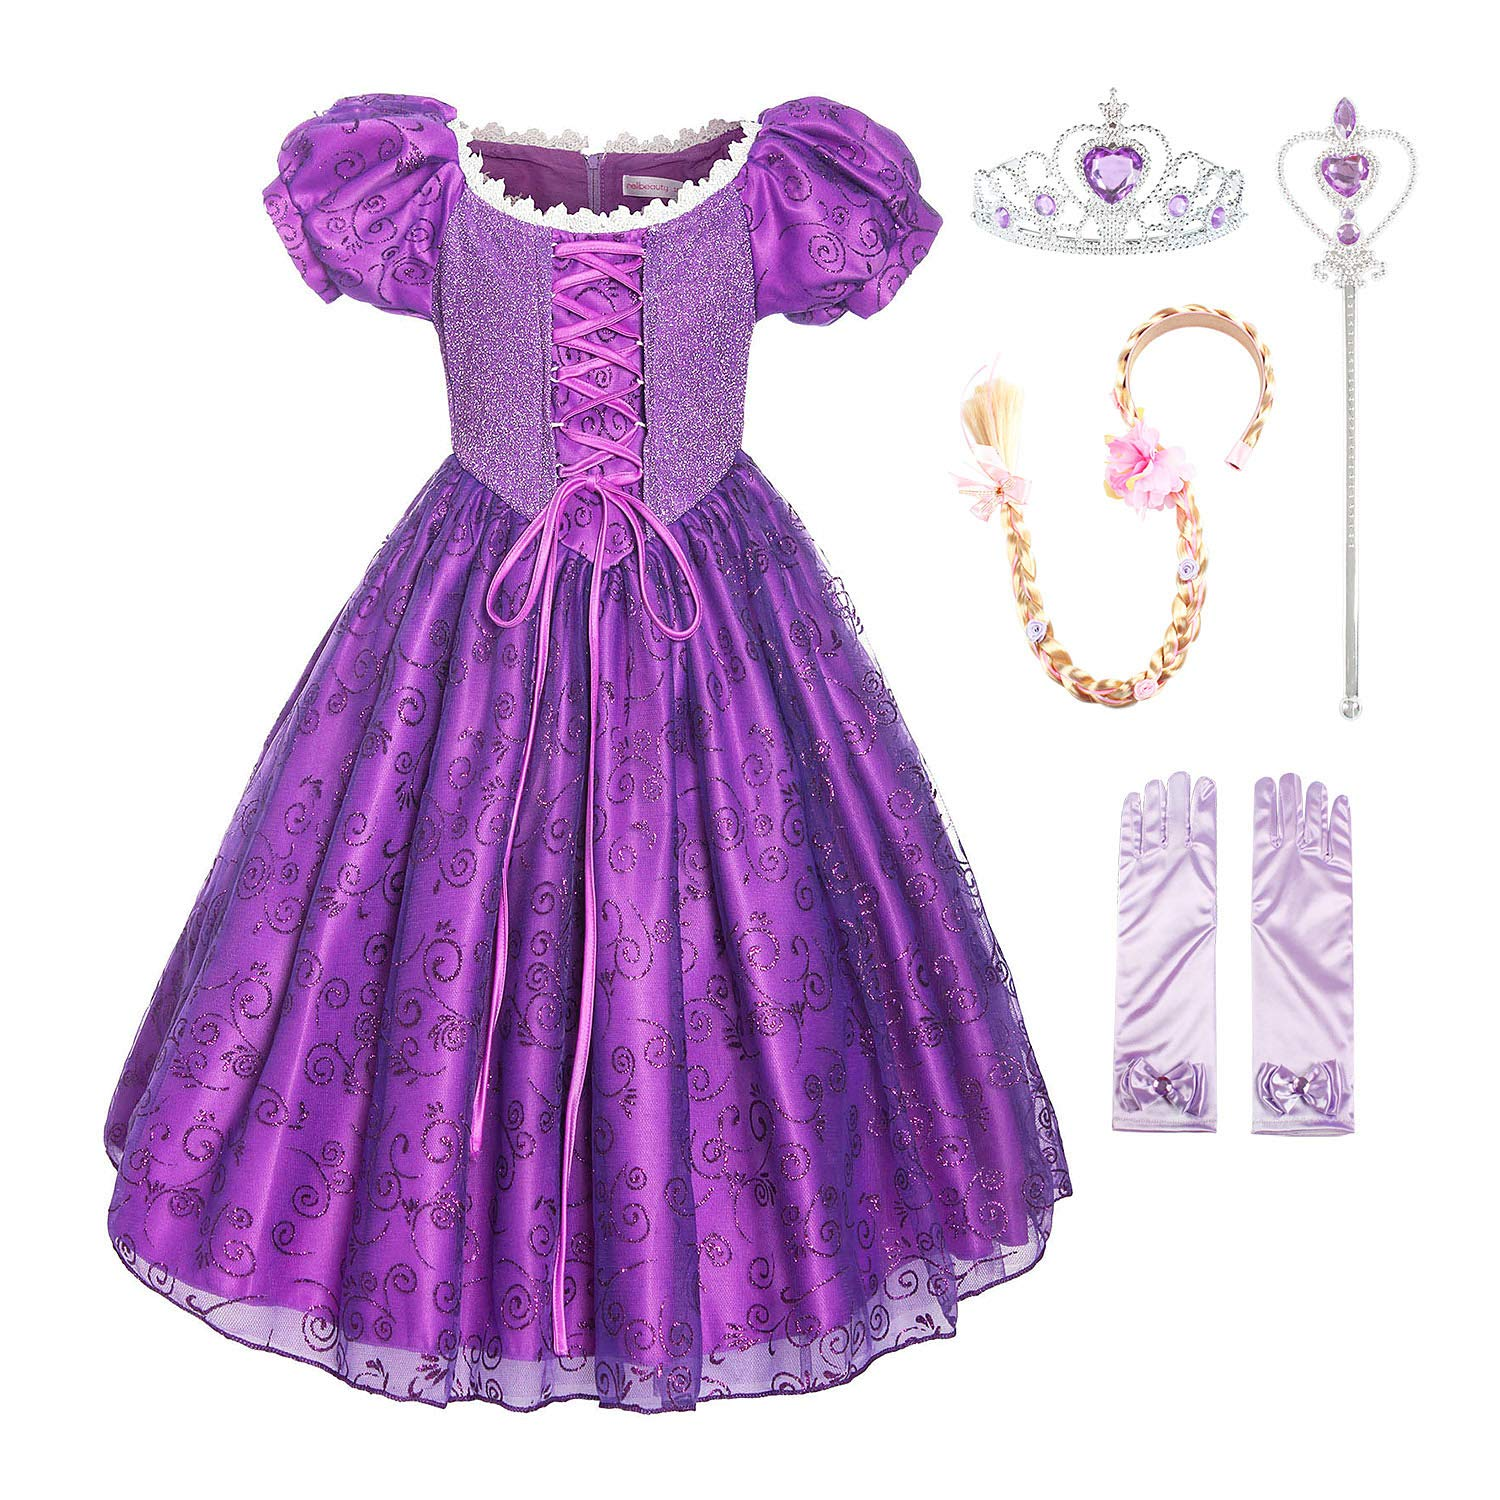 ReliBeauty Girls Princess Tangled Rapunzel Lace up Dress Costume with Accessories, 4T-4/110